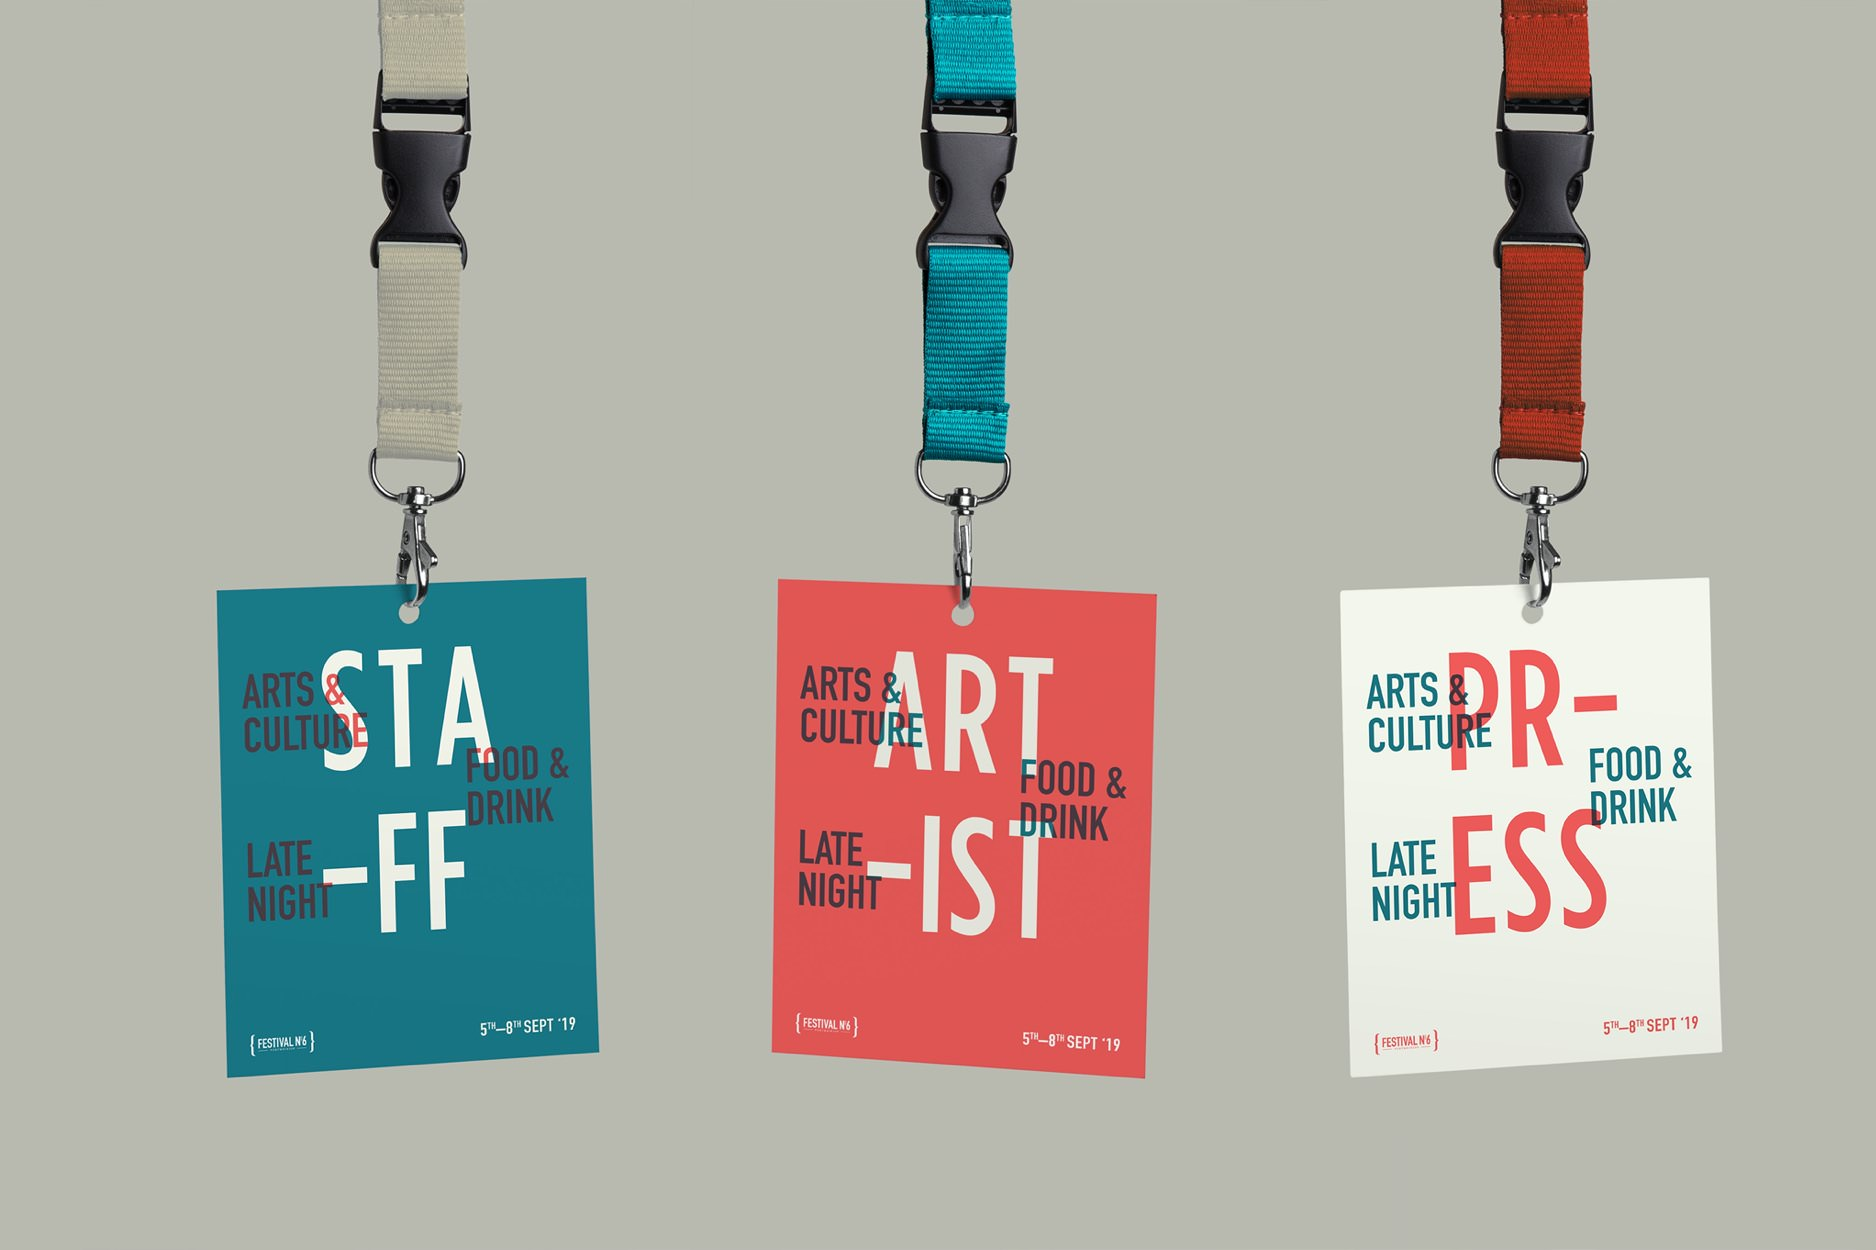 Festival No 6 passes. Student brief at Shillington.